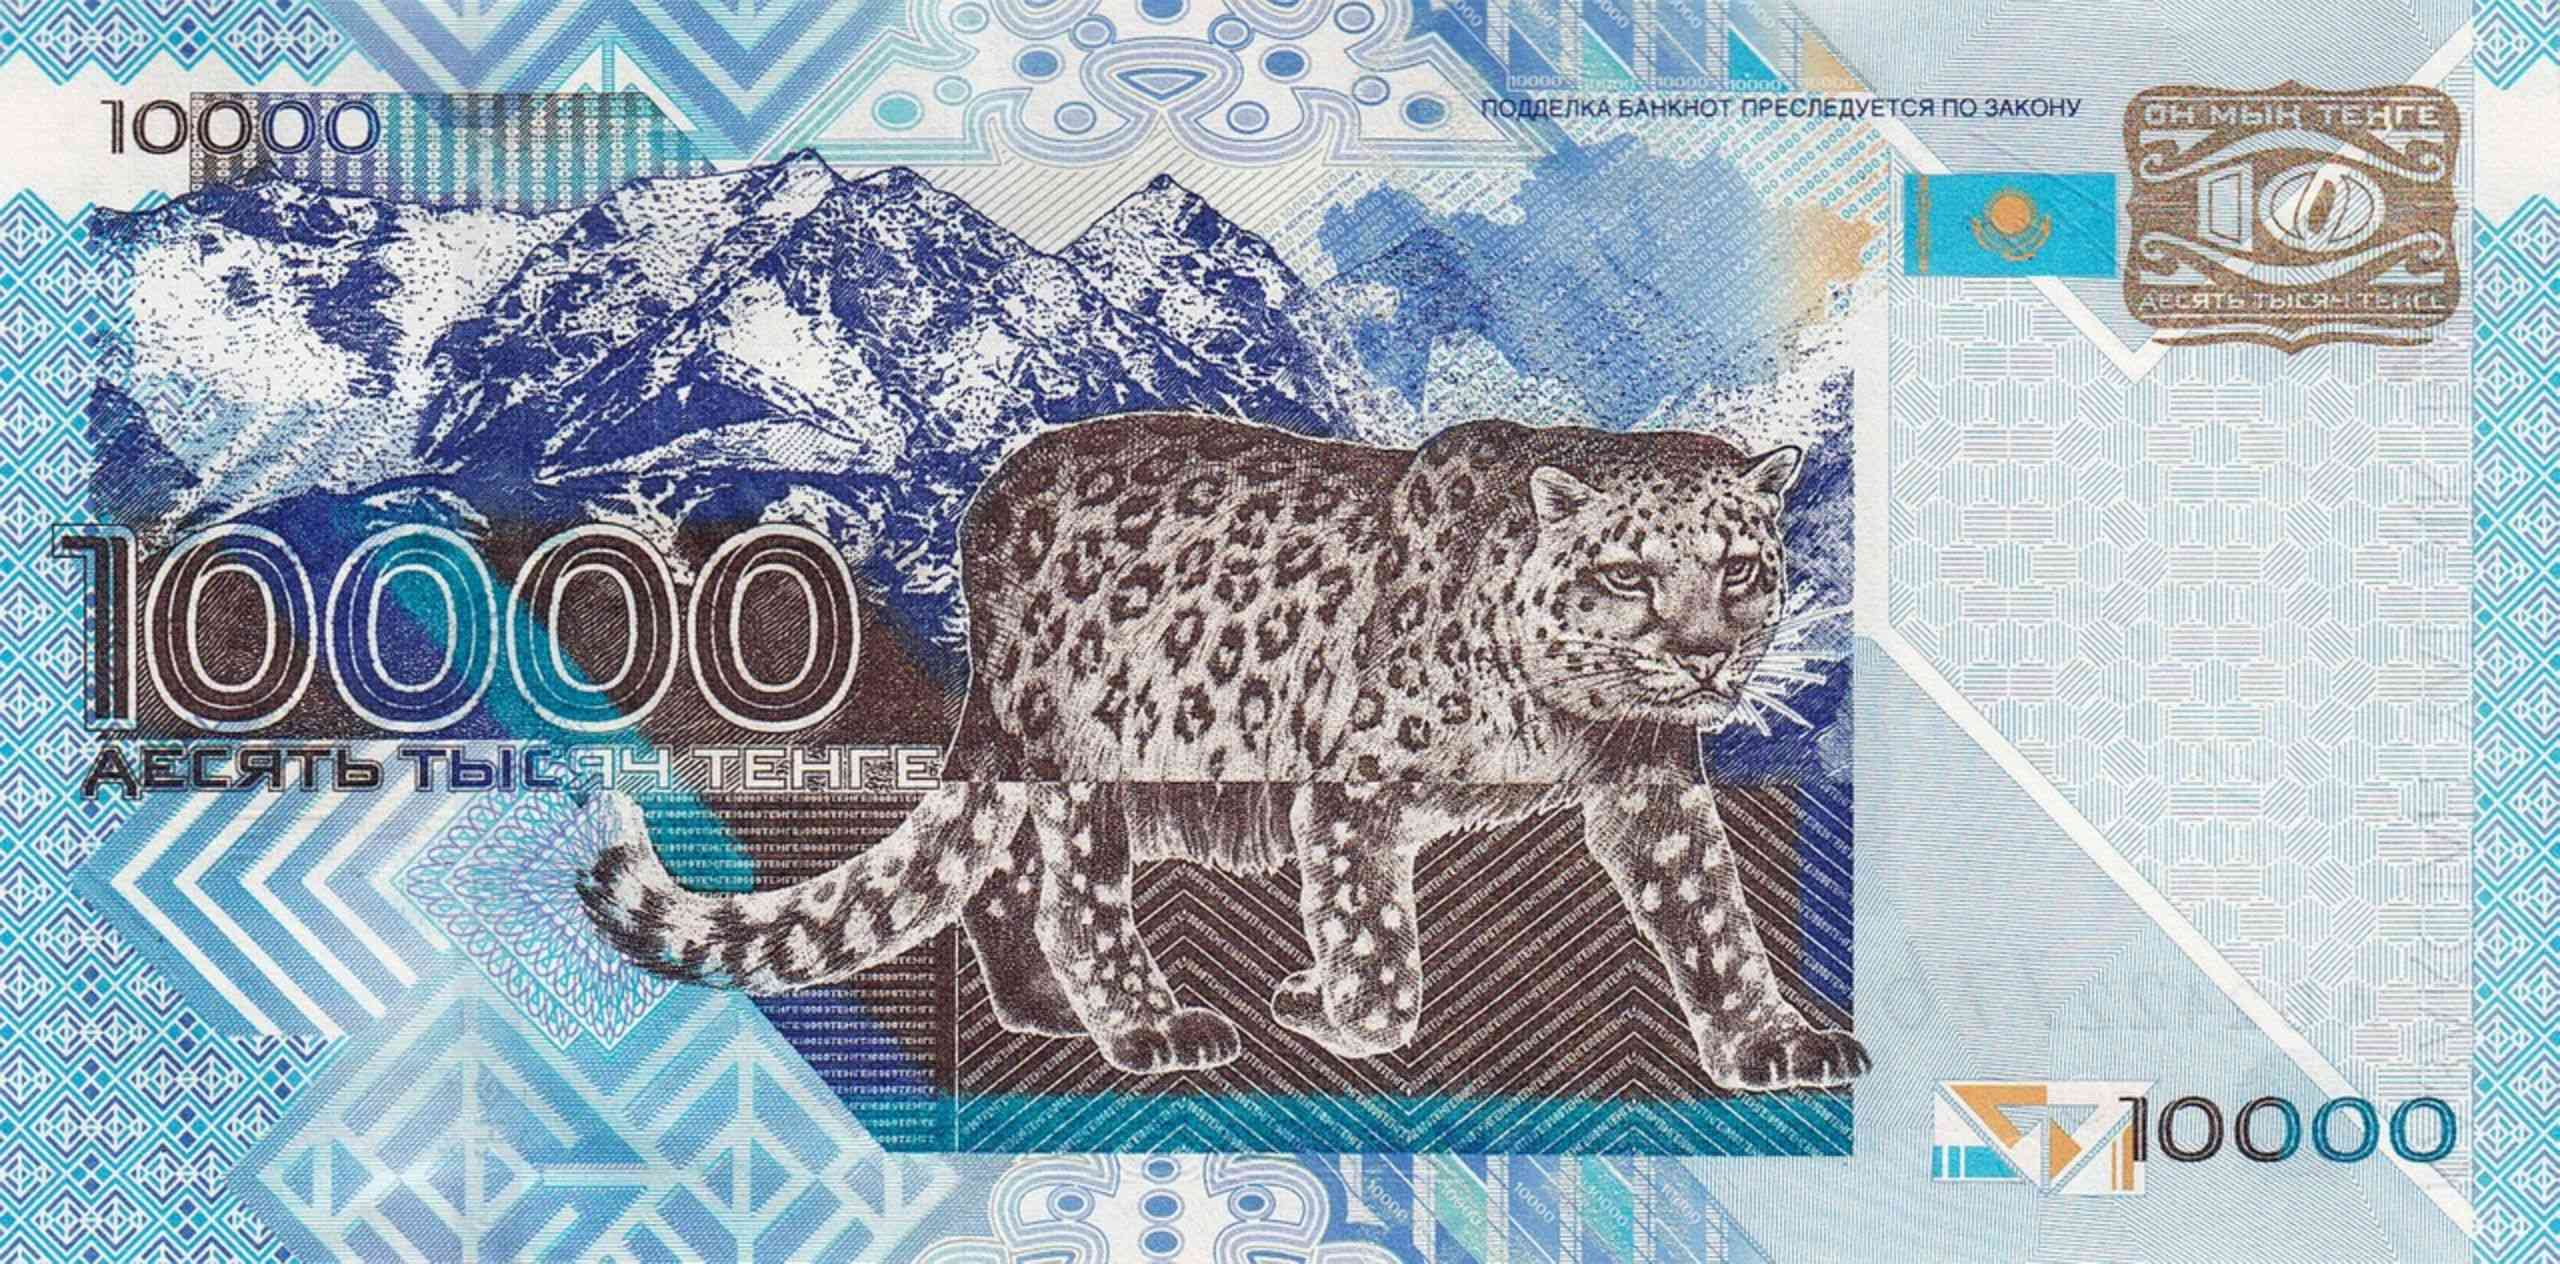 Scientists on Banknotes